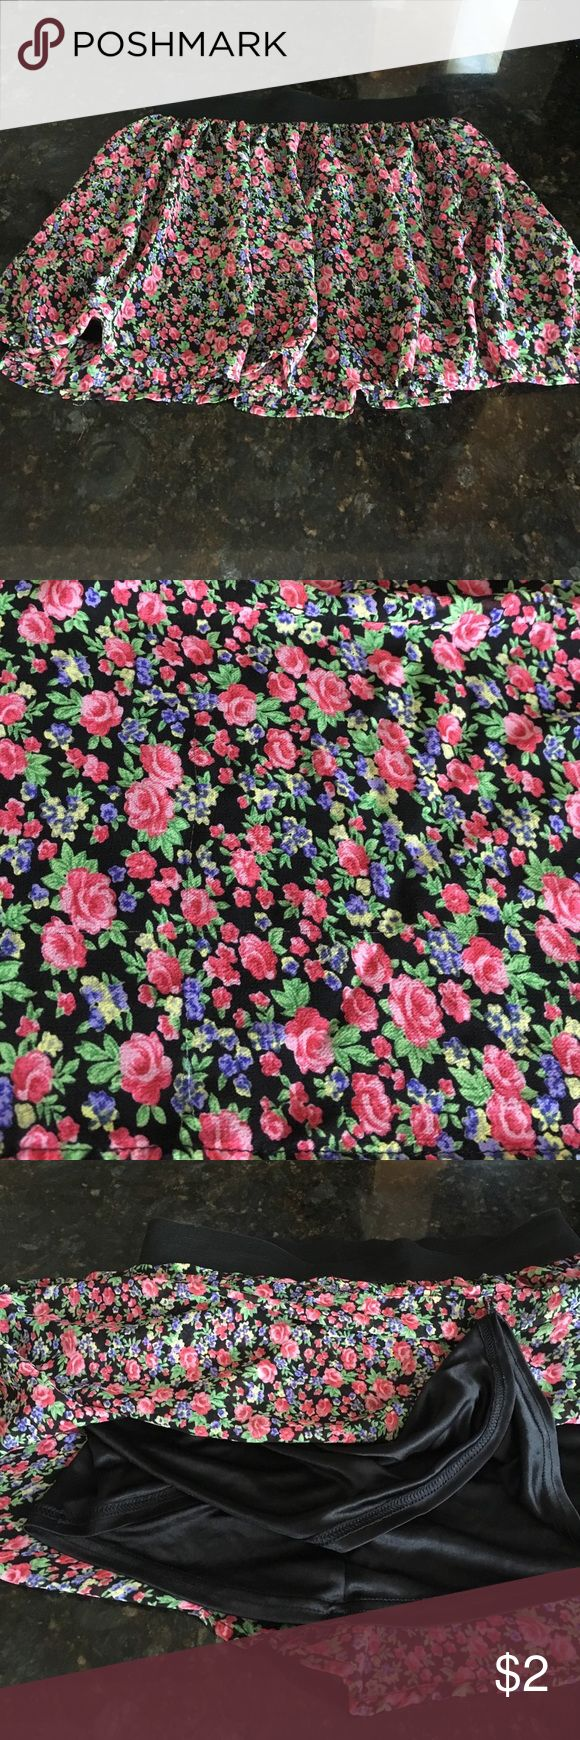 Floral print forever 21 skirt. Skirt with floral print. It's very comfortable with an elastic band. Black silk material under the first floral layer. It says size small but can expand to a size medium Forever 21 Skirts Midi